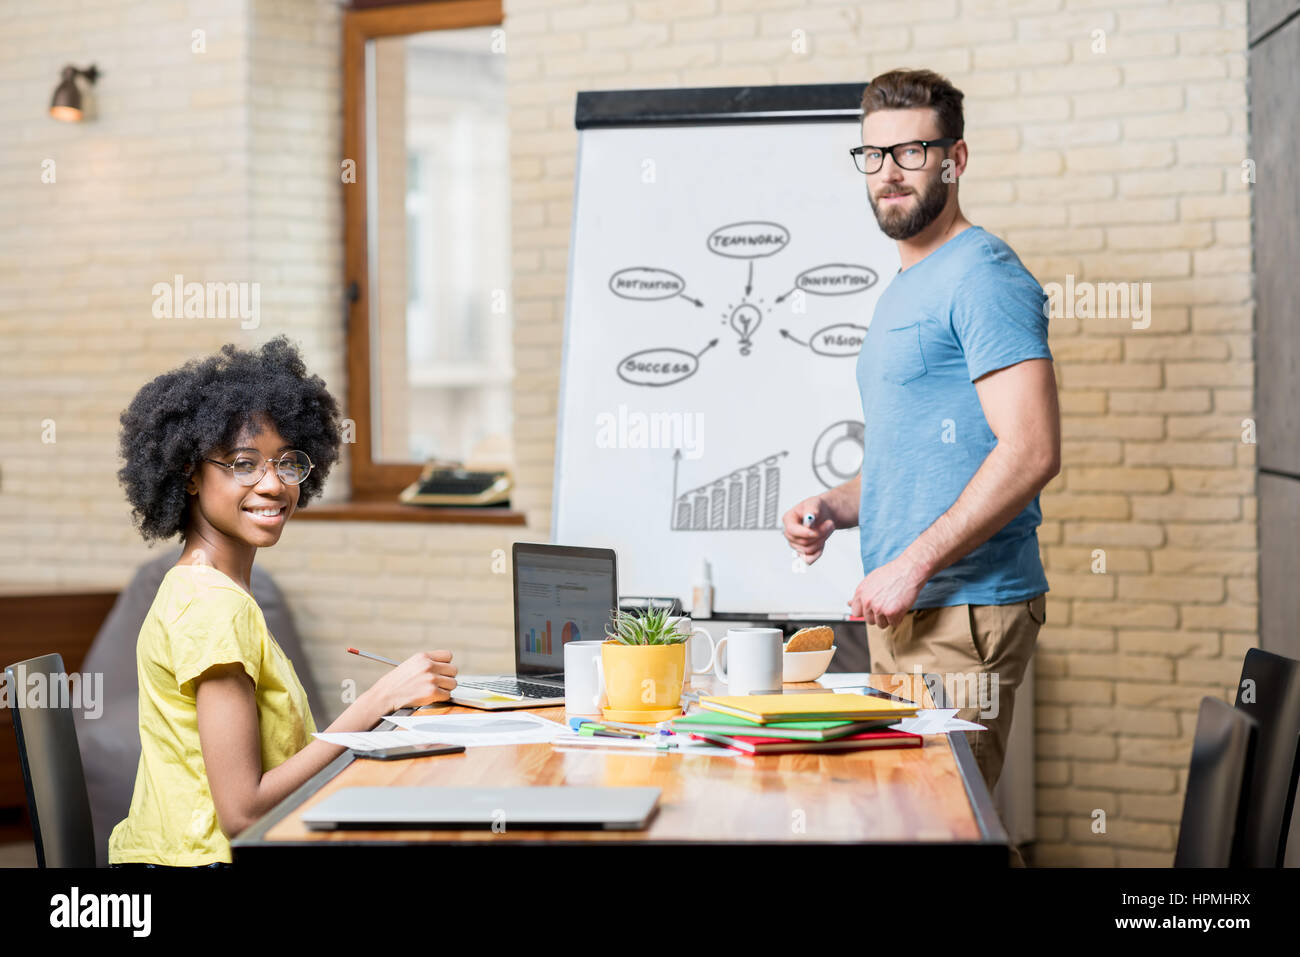 Coworkers working indoors - Stock Image